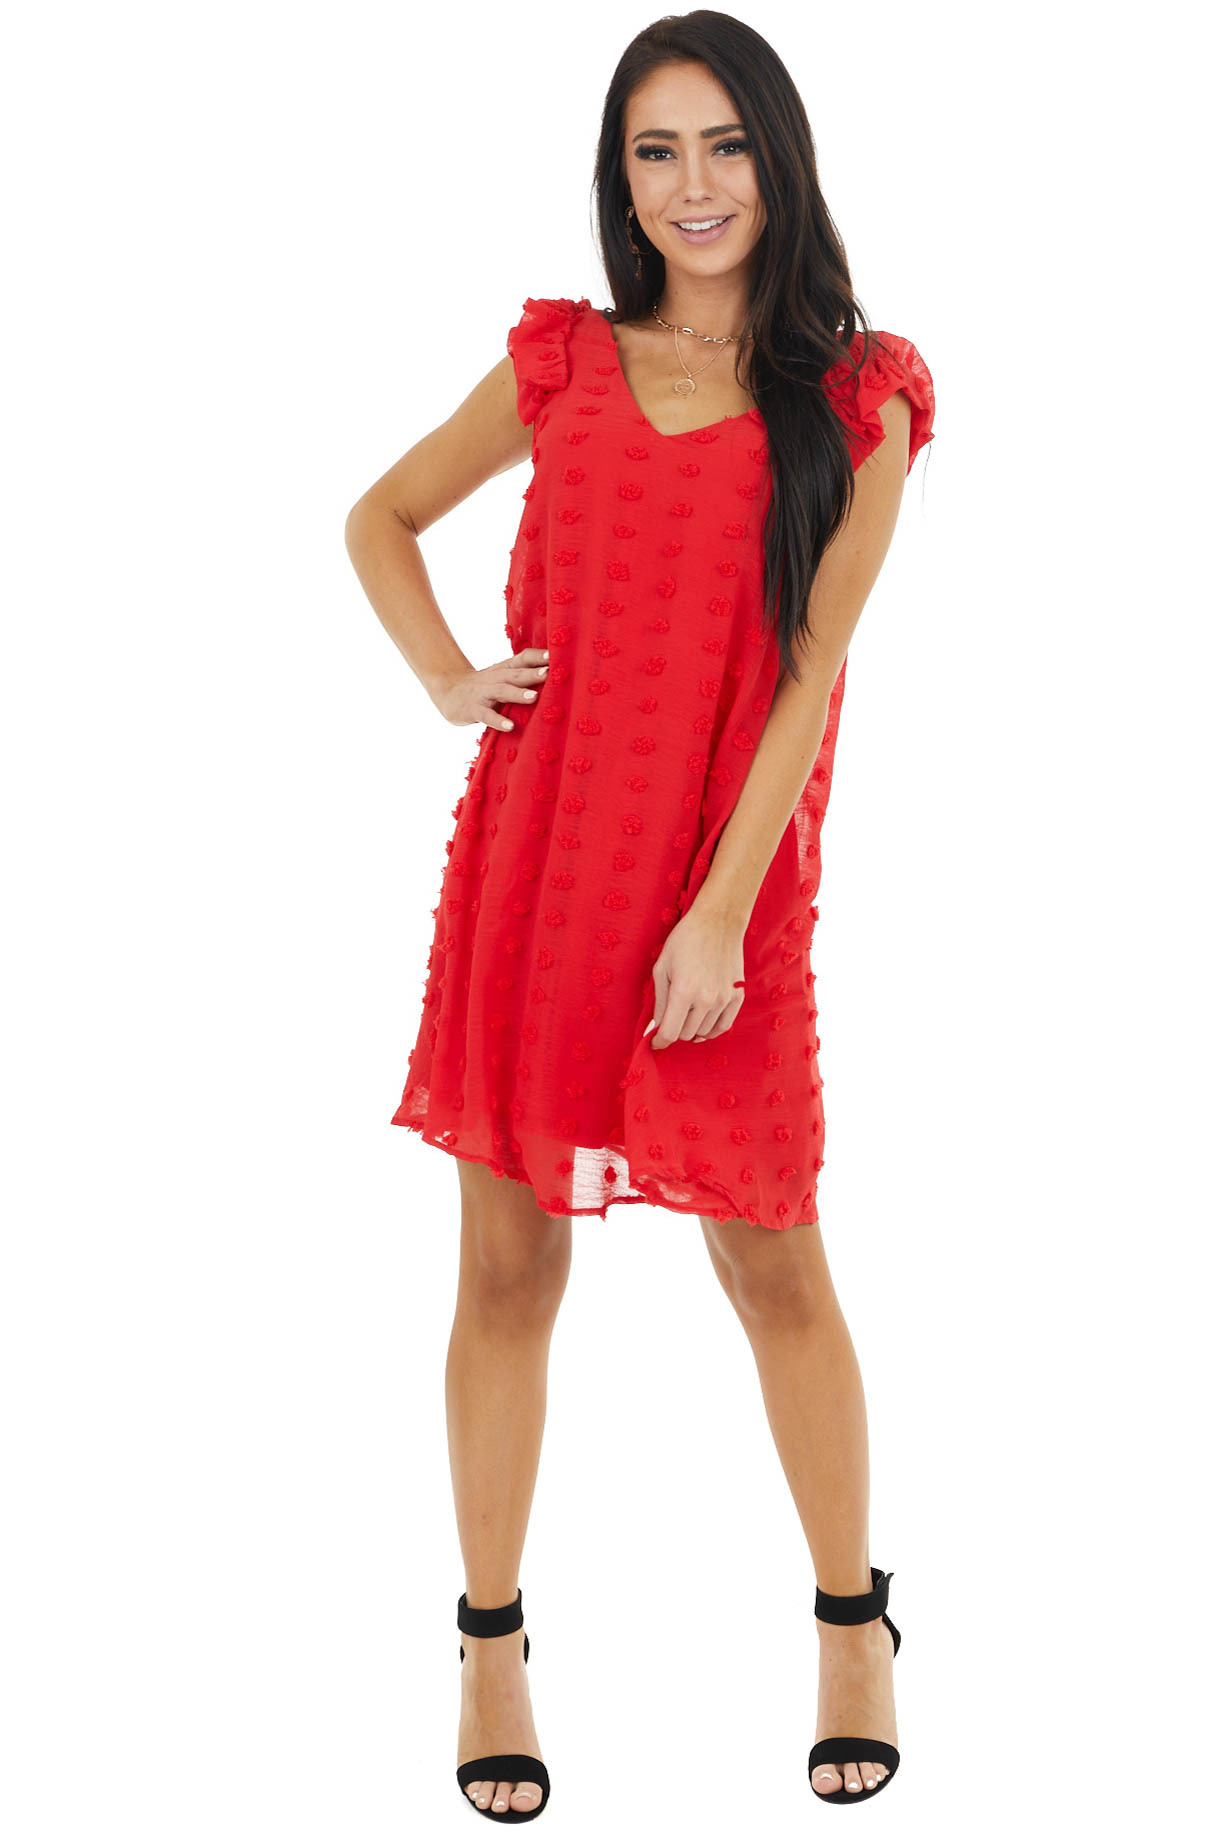 Tomato Red Swiss Dot Sleeveless Dress with Ruffle Details